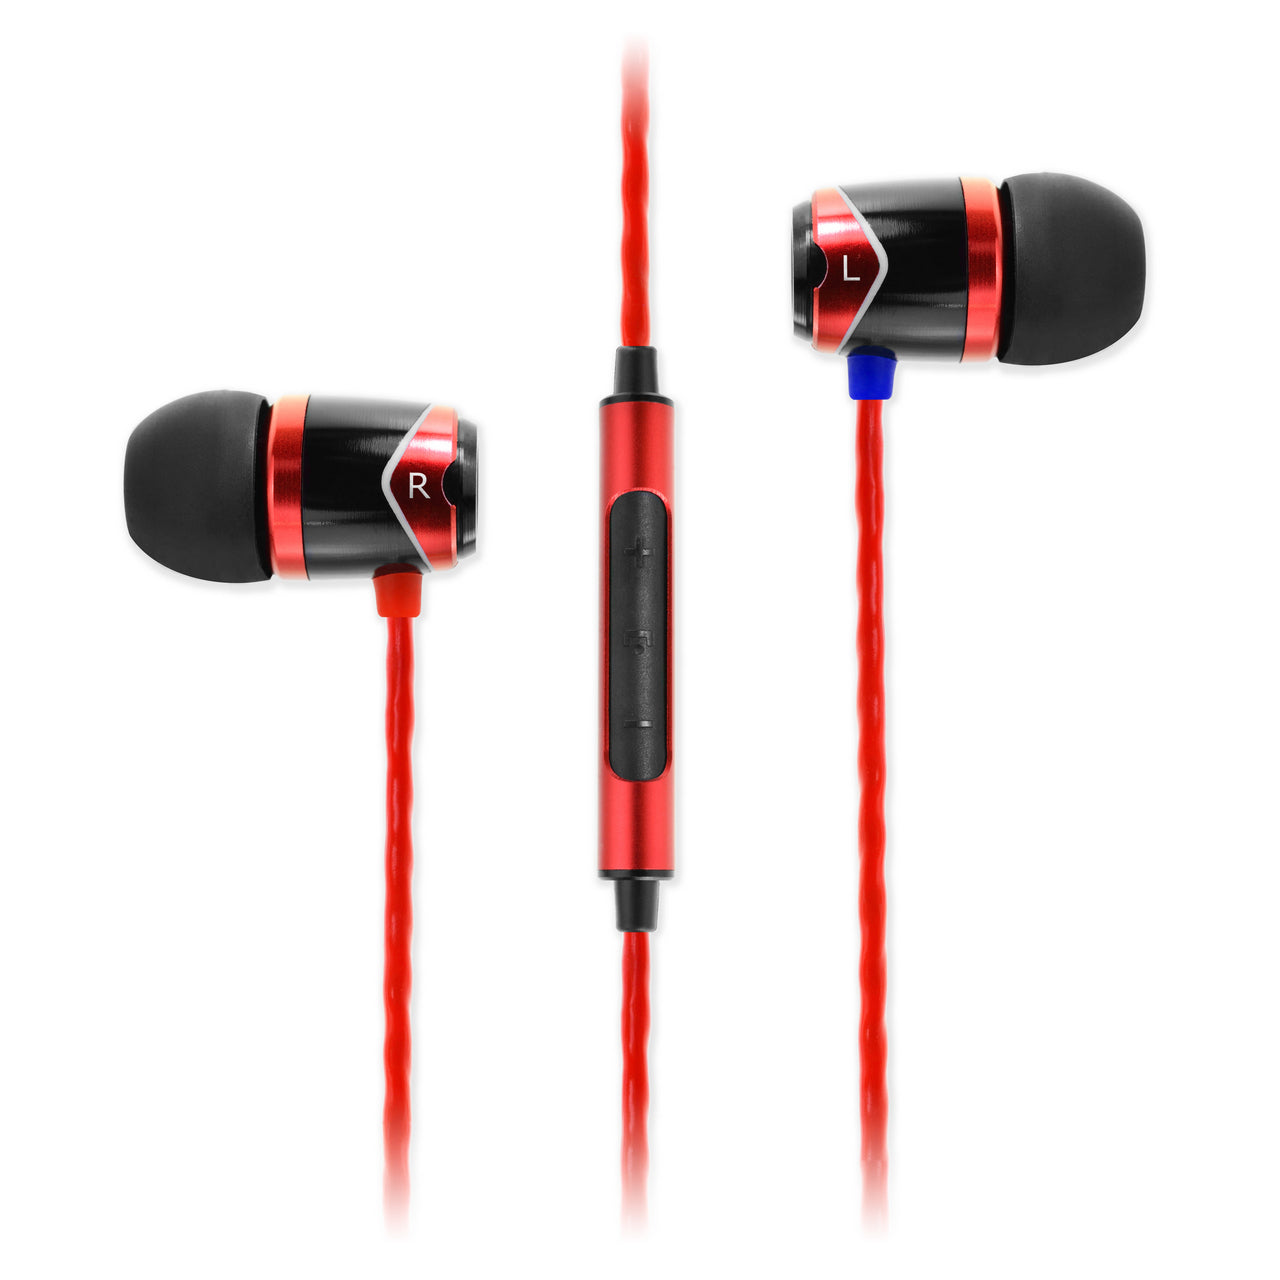 SOUNDMAGIC E10C IN EAR ISOLATING EARPHONES WITH MIC, RED - Refurbished